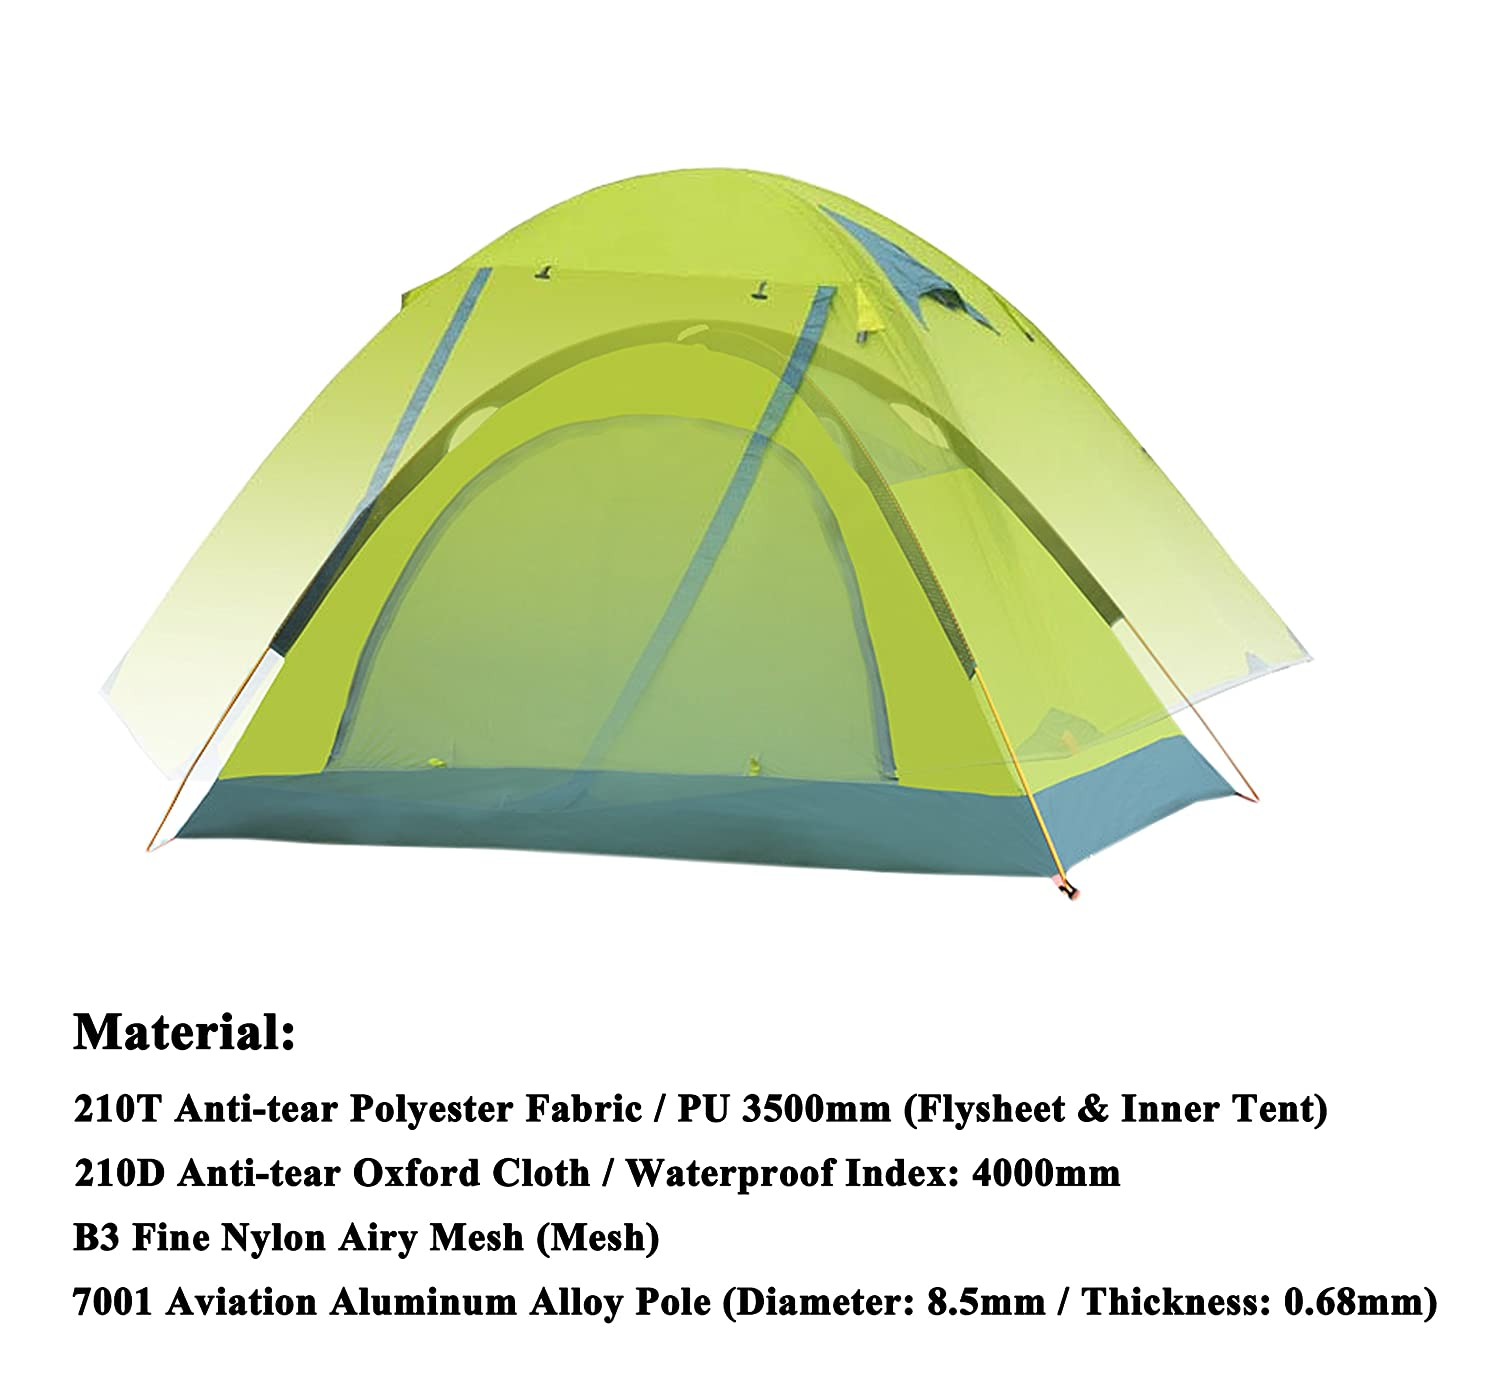 Amazon.com  WoneNice Professional C&ing Tent 3-4 season 2-person Double Layer Backpacking Dome Tent (Green - 4 season tent)  Sports u0026 Outdoors  sc 1 st  Amazon.com & Amazon.com : WoneNice Professional Camping Tent 3-4 season 2 ...